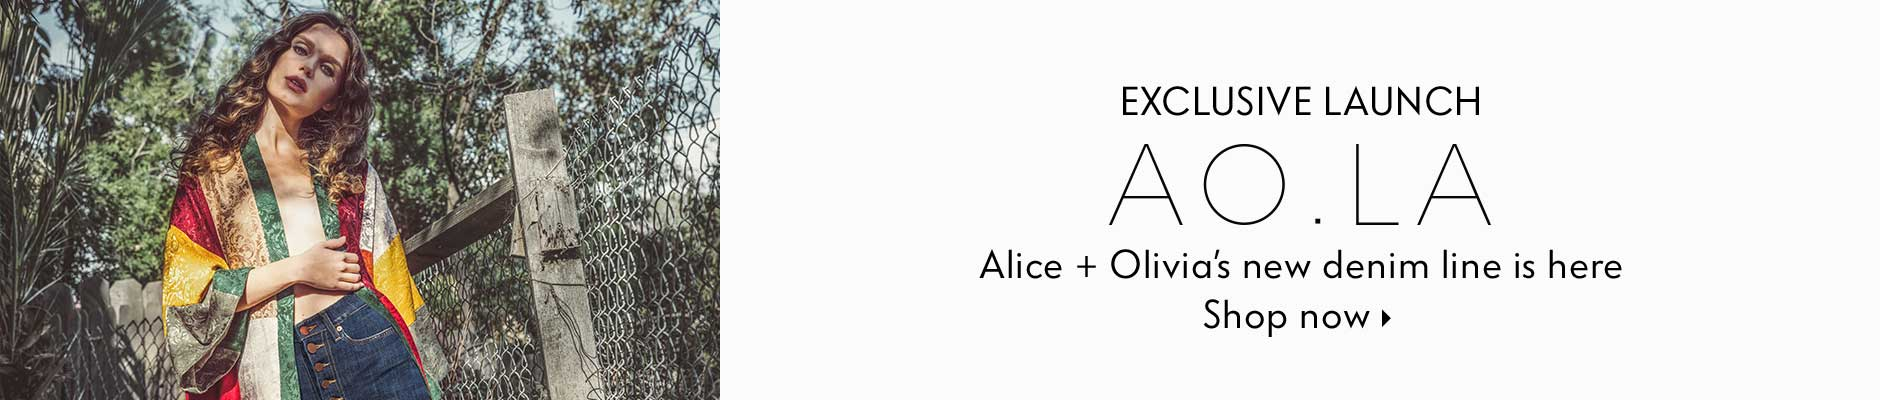 Exclusive Launch: AO.LA - Alice + Olivia's new denim line is here